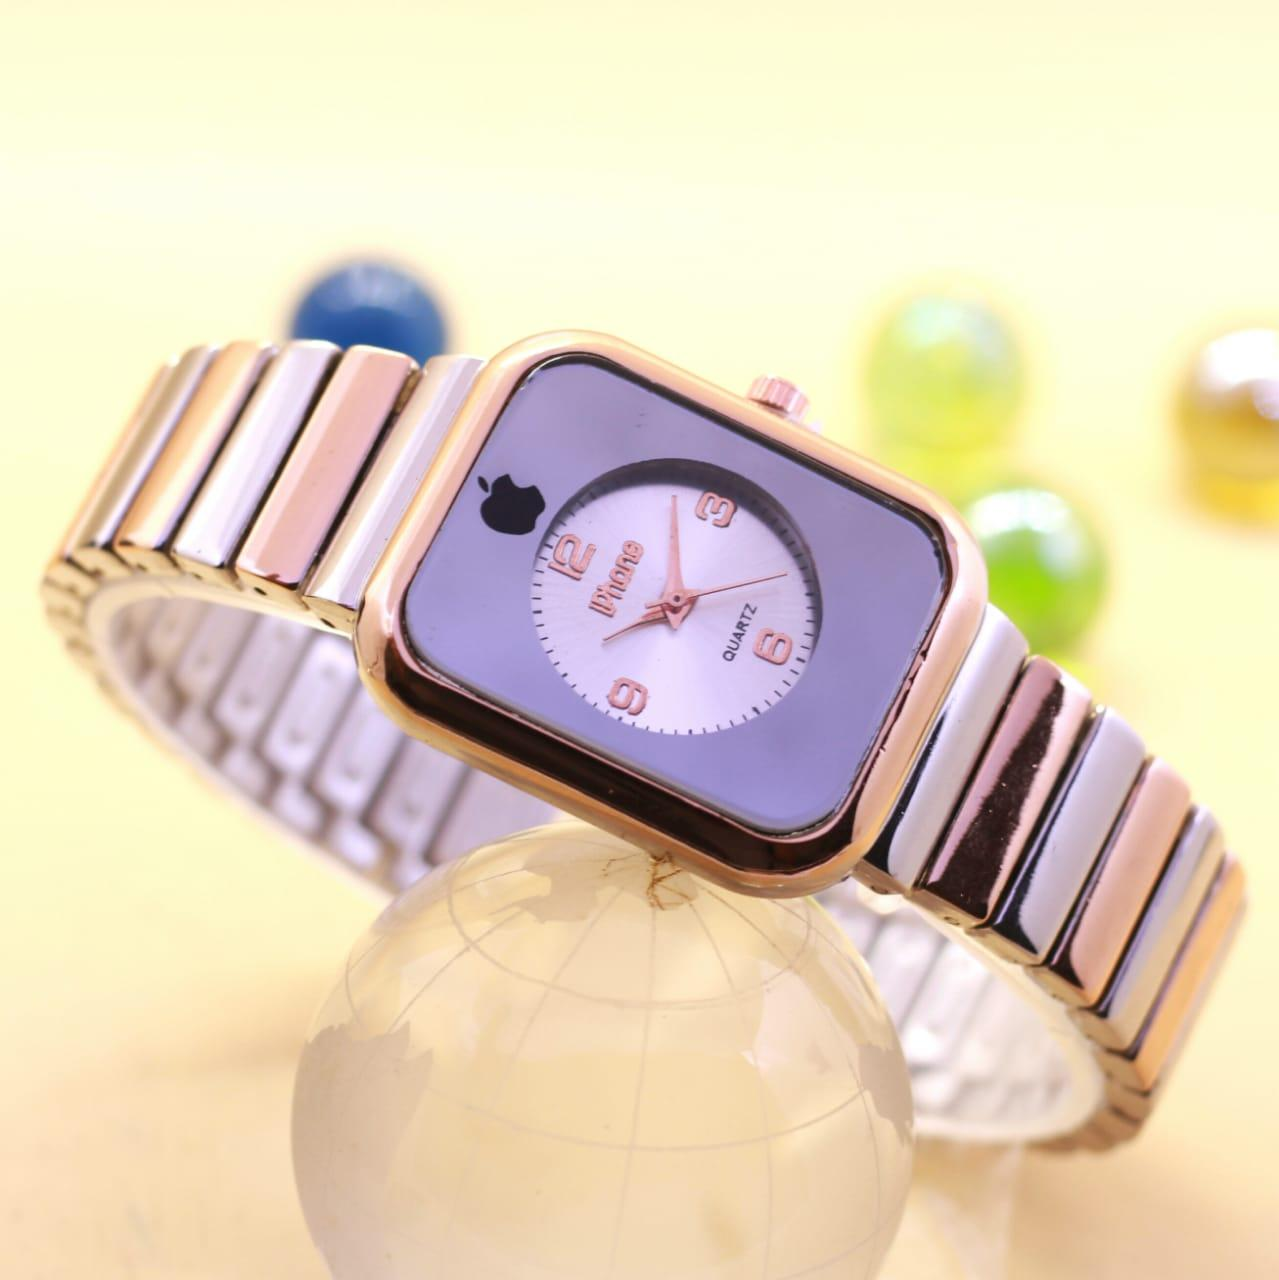 Jam Tangan Fashion Wanita Iphone Analog Rantai